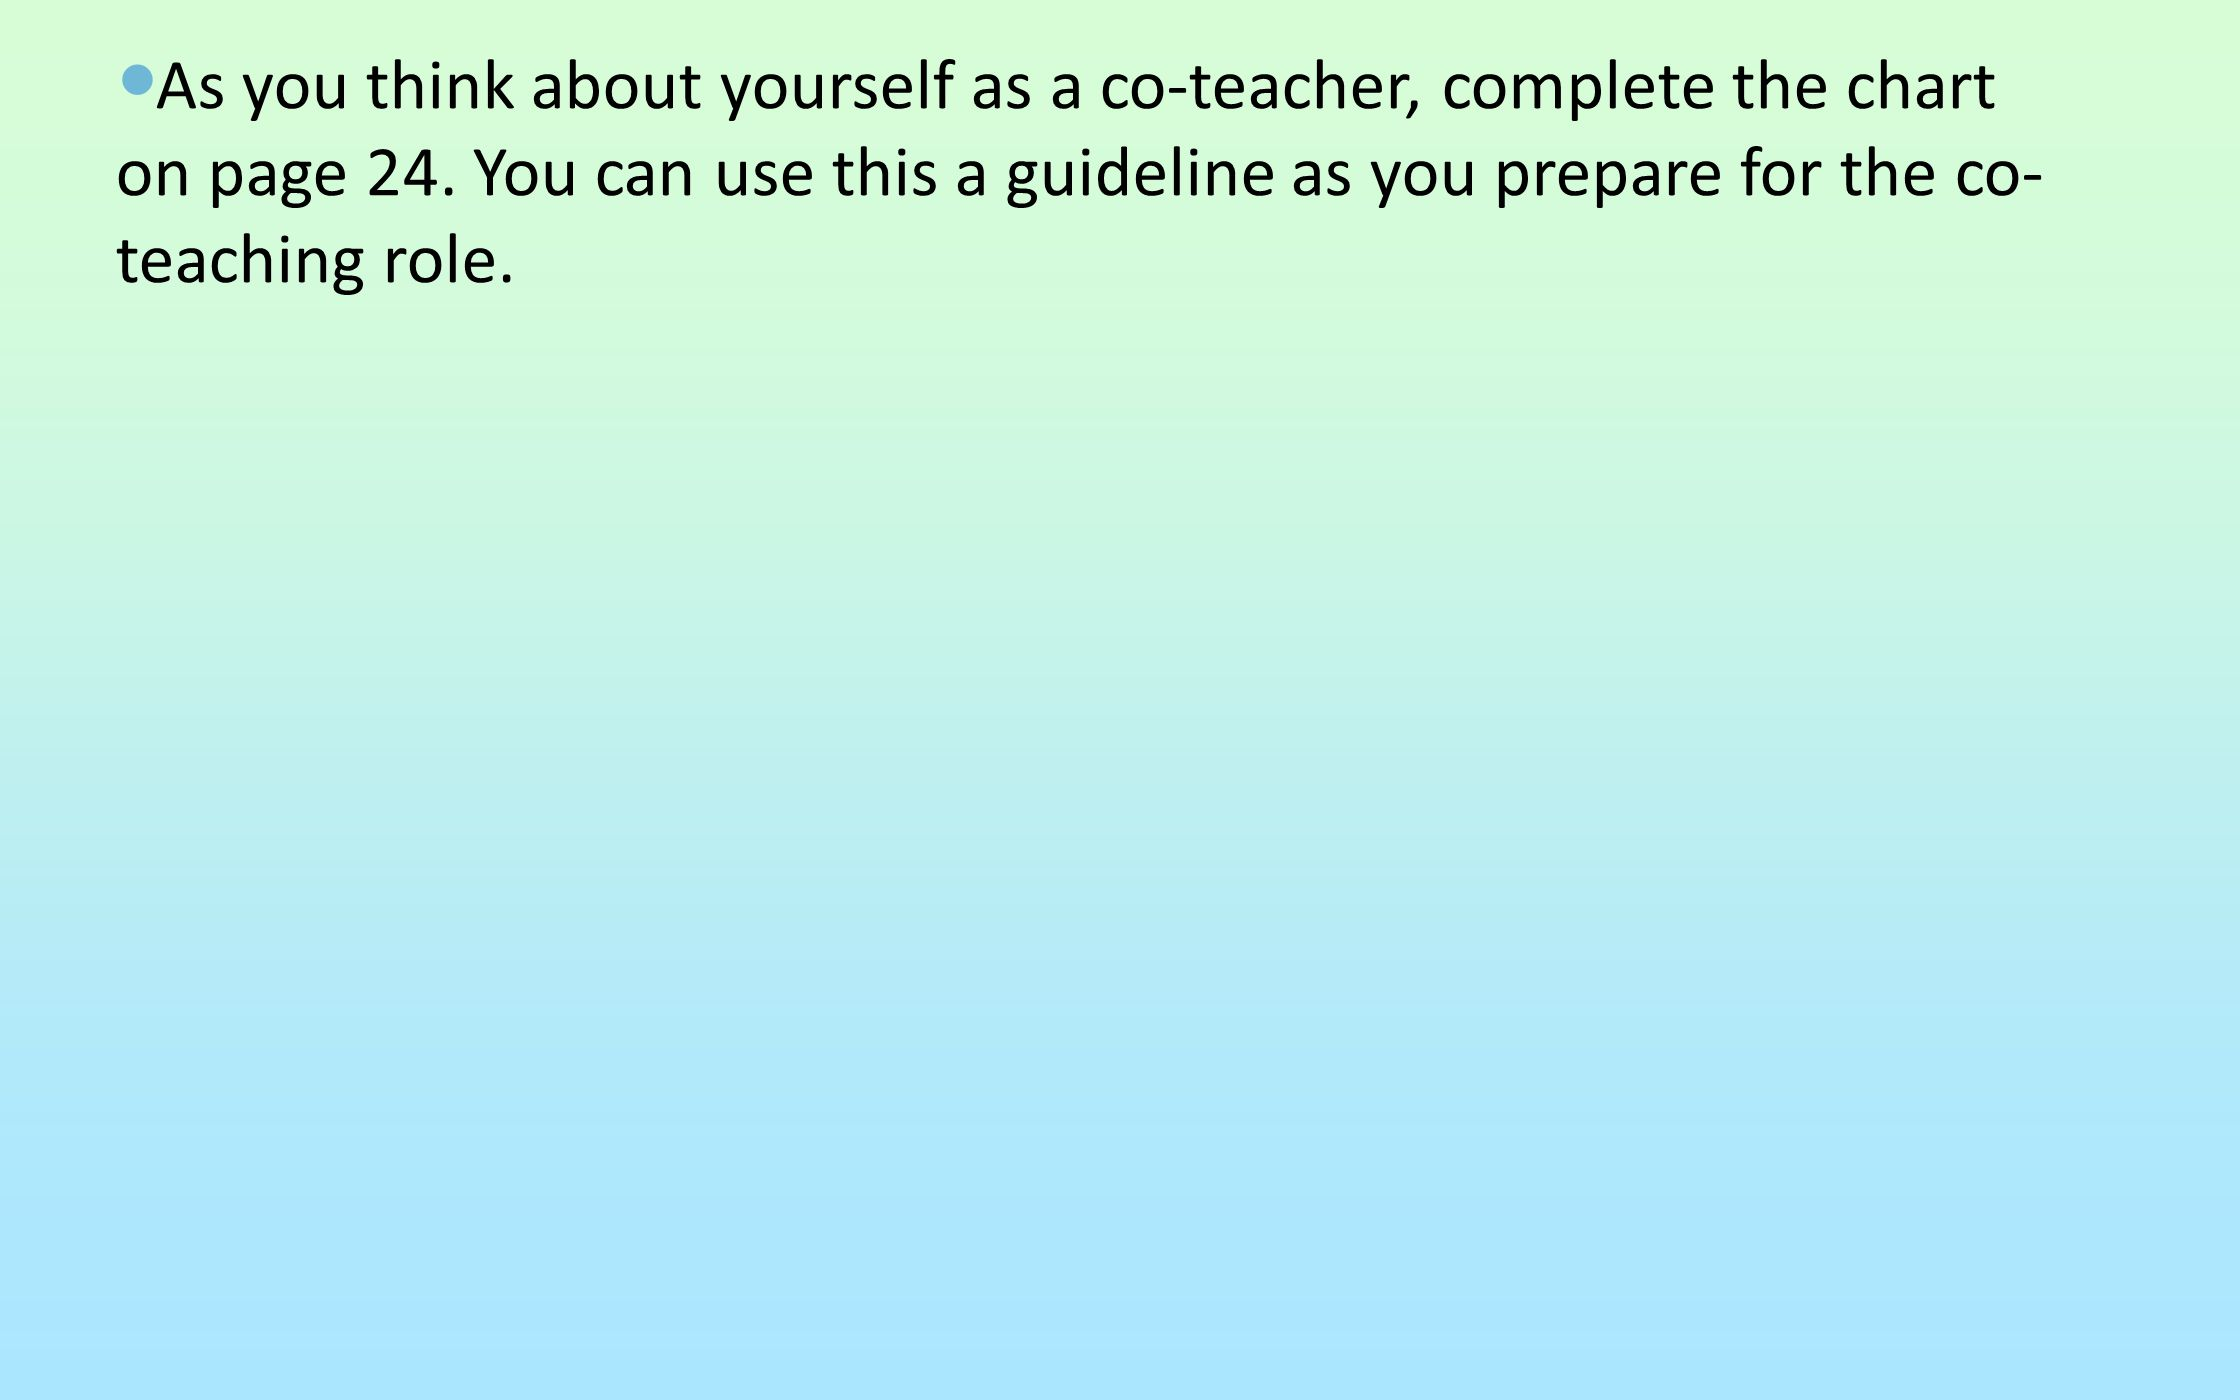 As you think about yourself as a co-teacher, complete the chart on page 24.